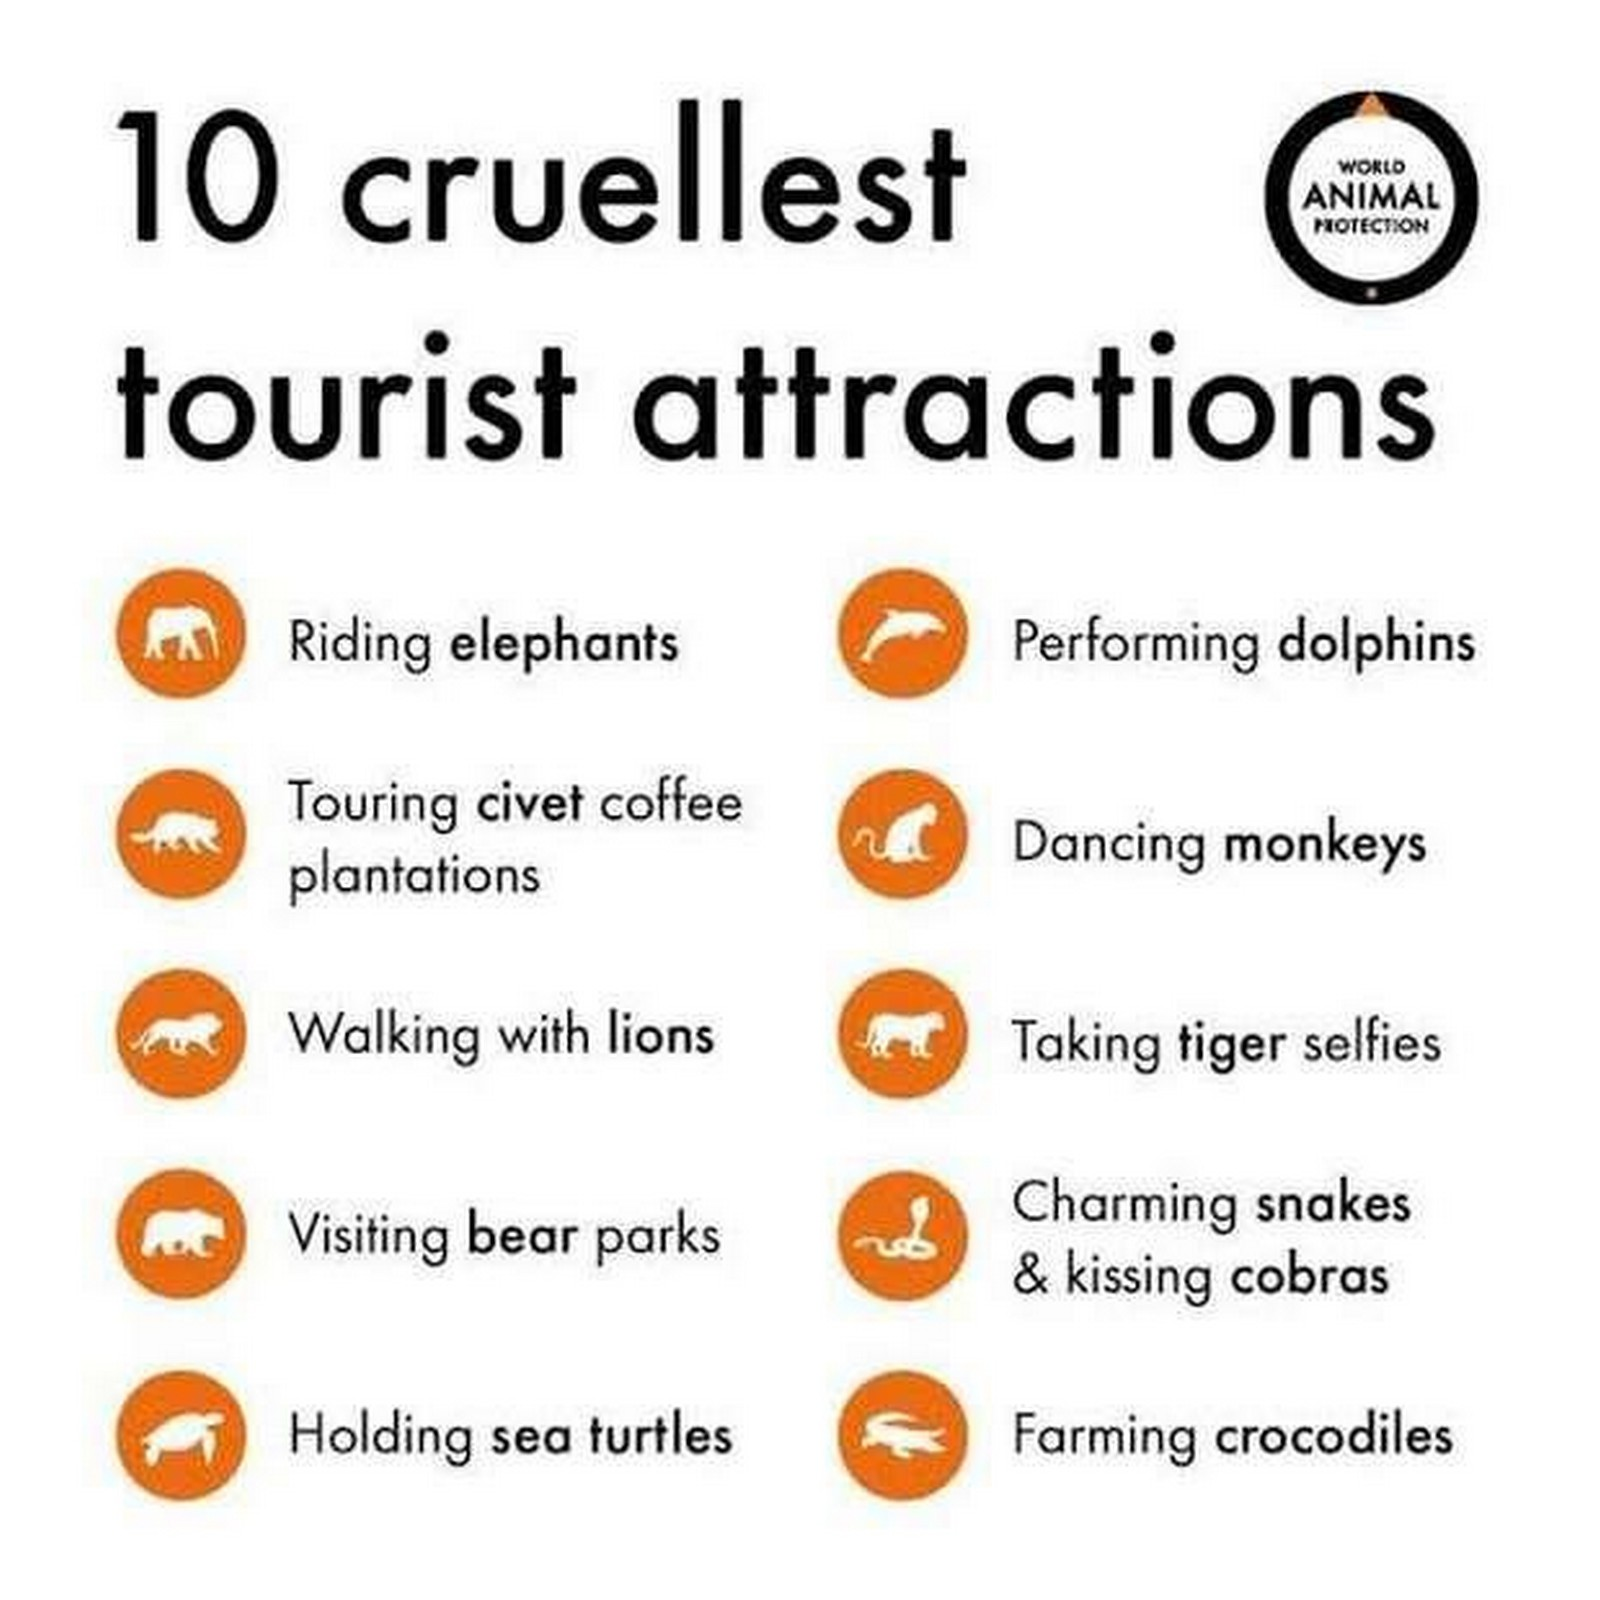 Malaysian Feed Asiaone Re Idiot Wah Animals At Tourist Attractions May Be Suffering